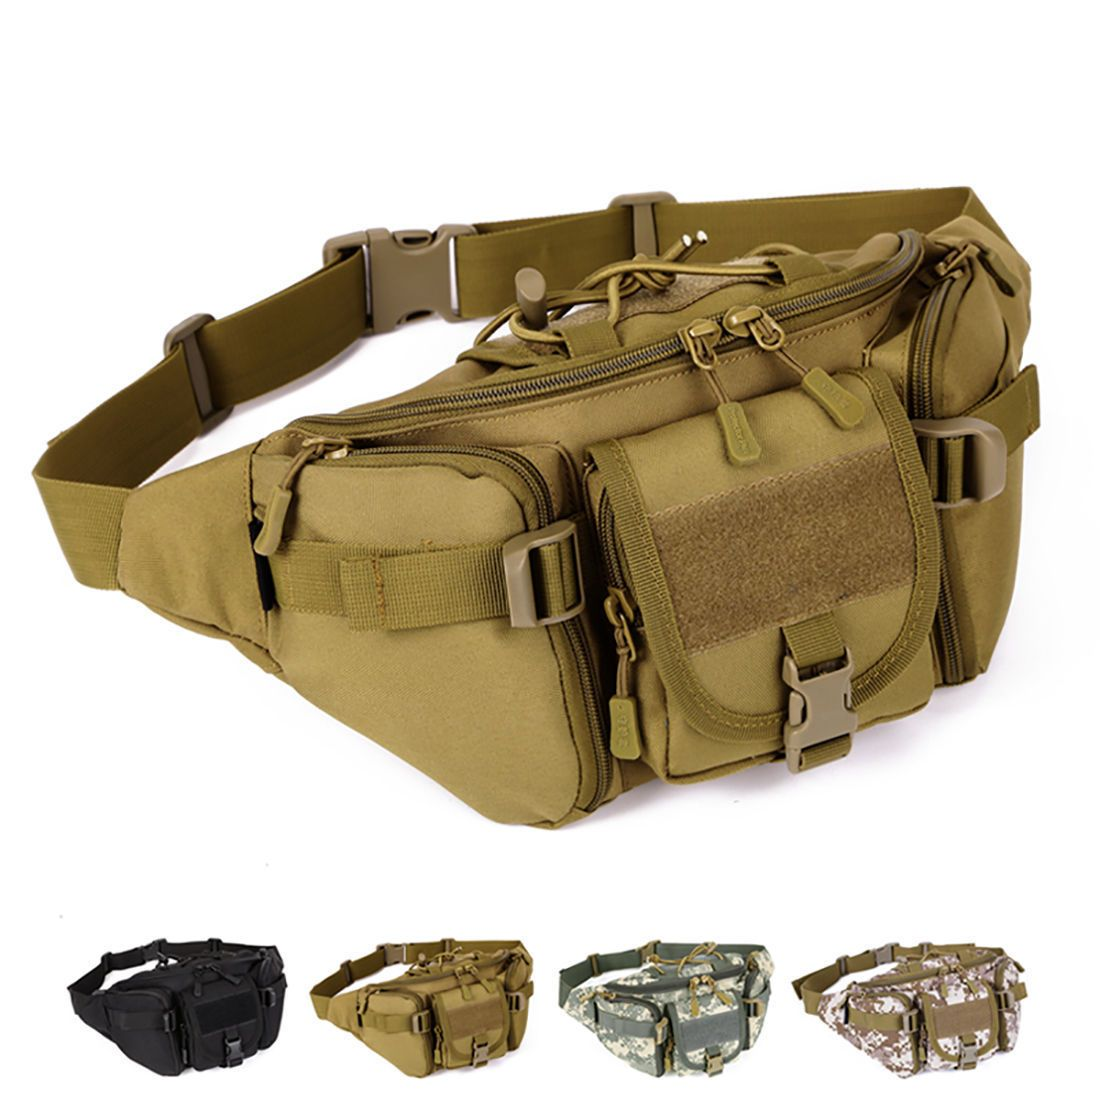 600d Outdoor Sports Bag Shoulder Military Camping Hiking Bag Tactical Cross Body Backpack Utility Travel Hiking Trekking Bag 2019 Latest Style Online Sale 50% Sports & Entertainment